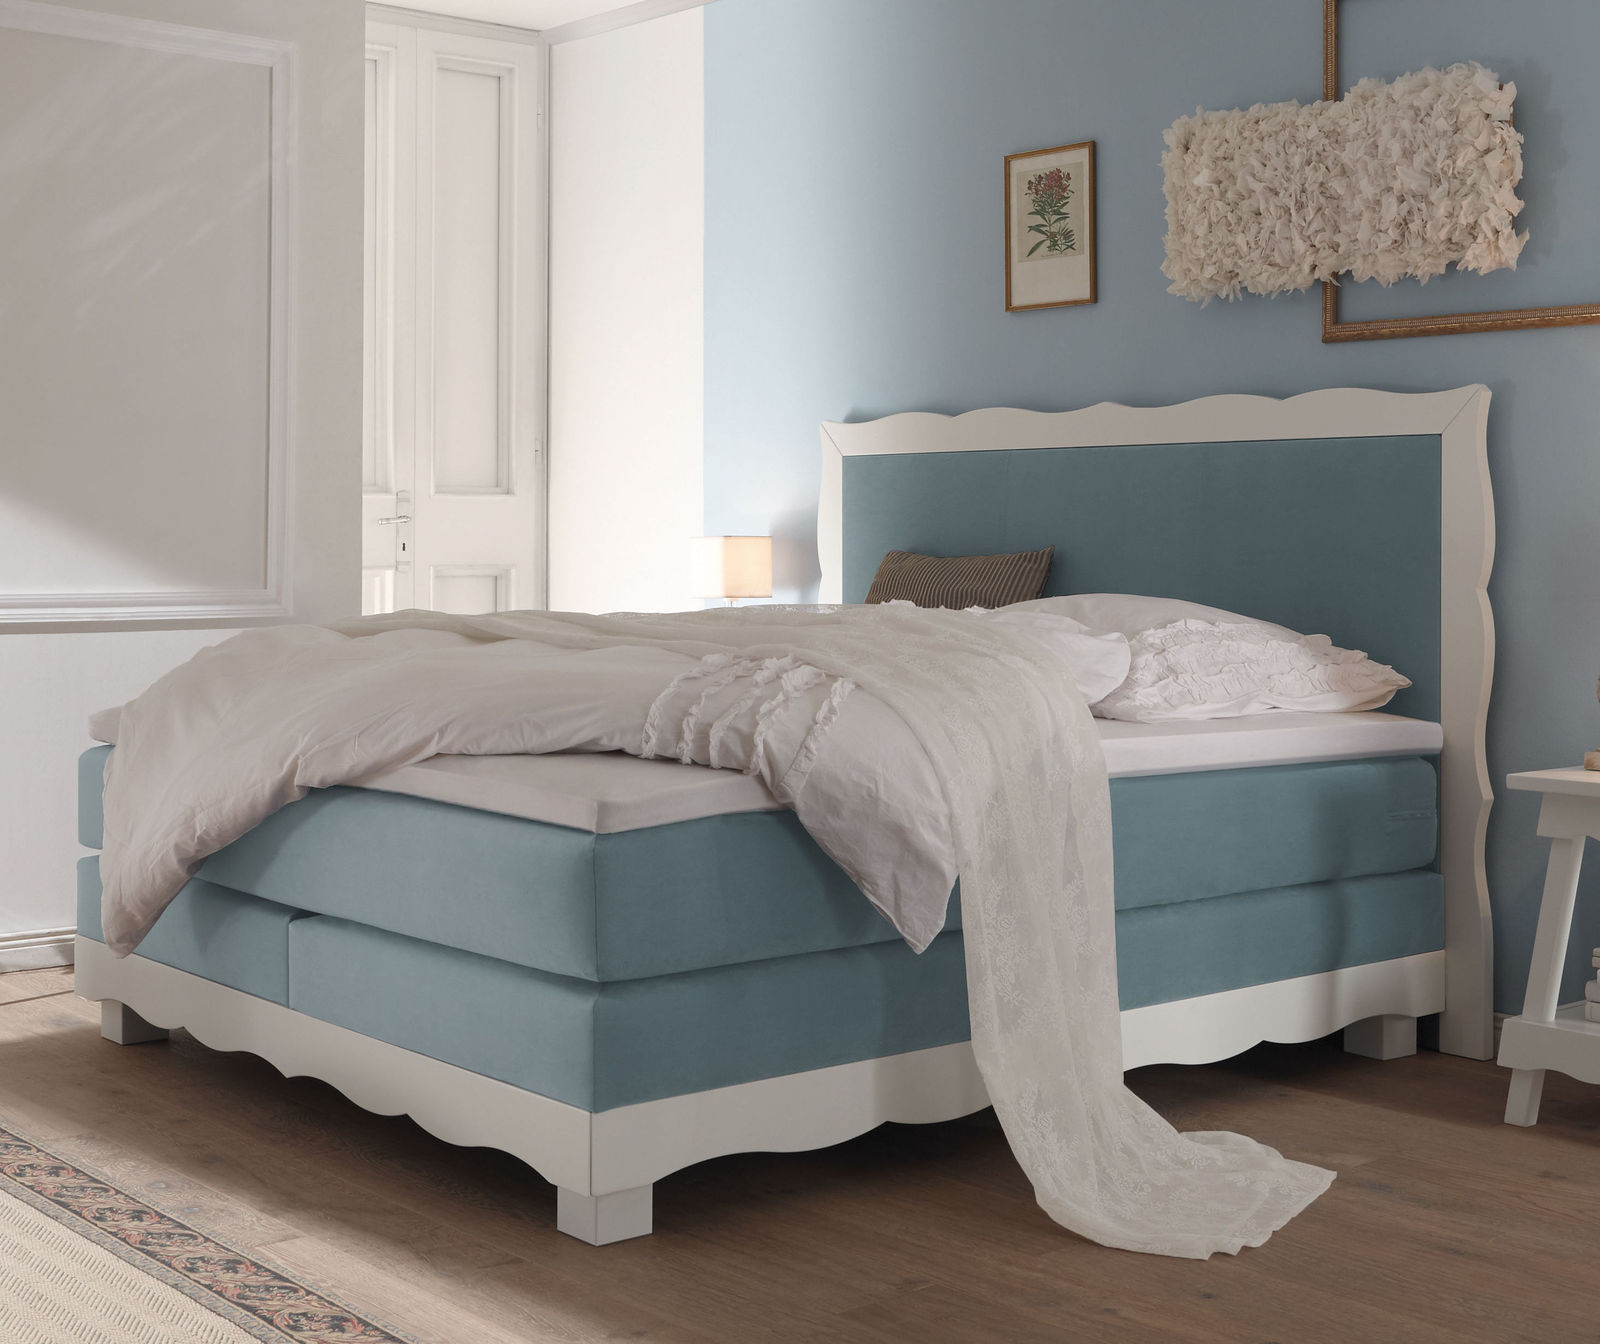 Boxspring Bett Landhausstil